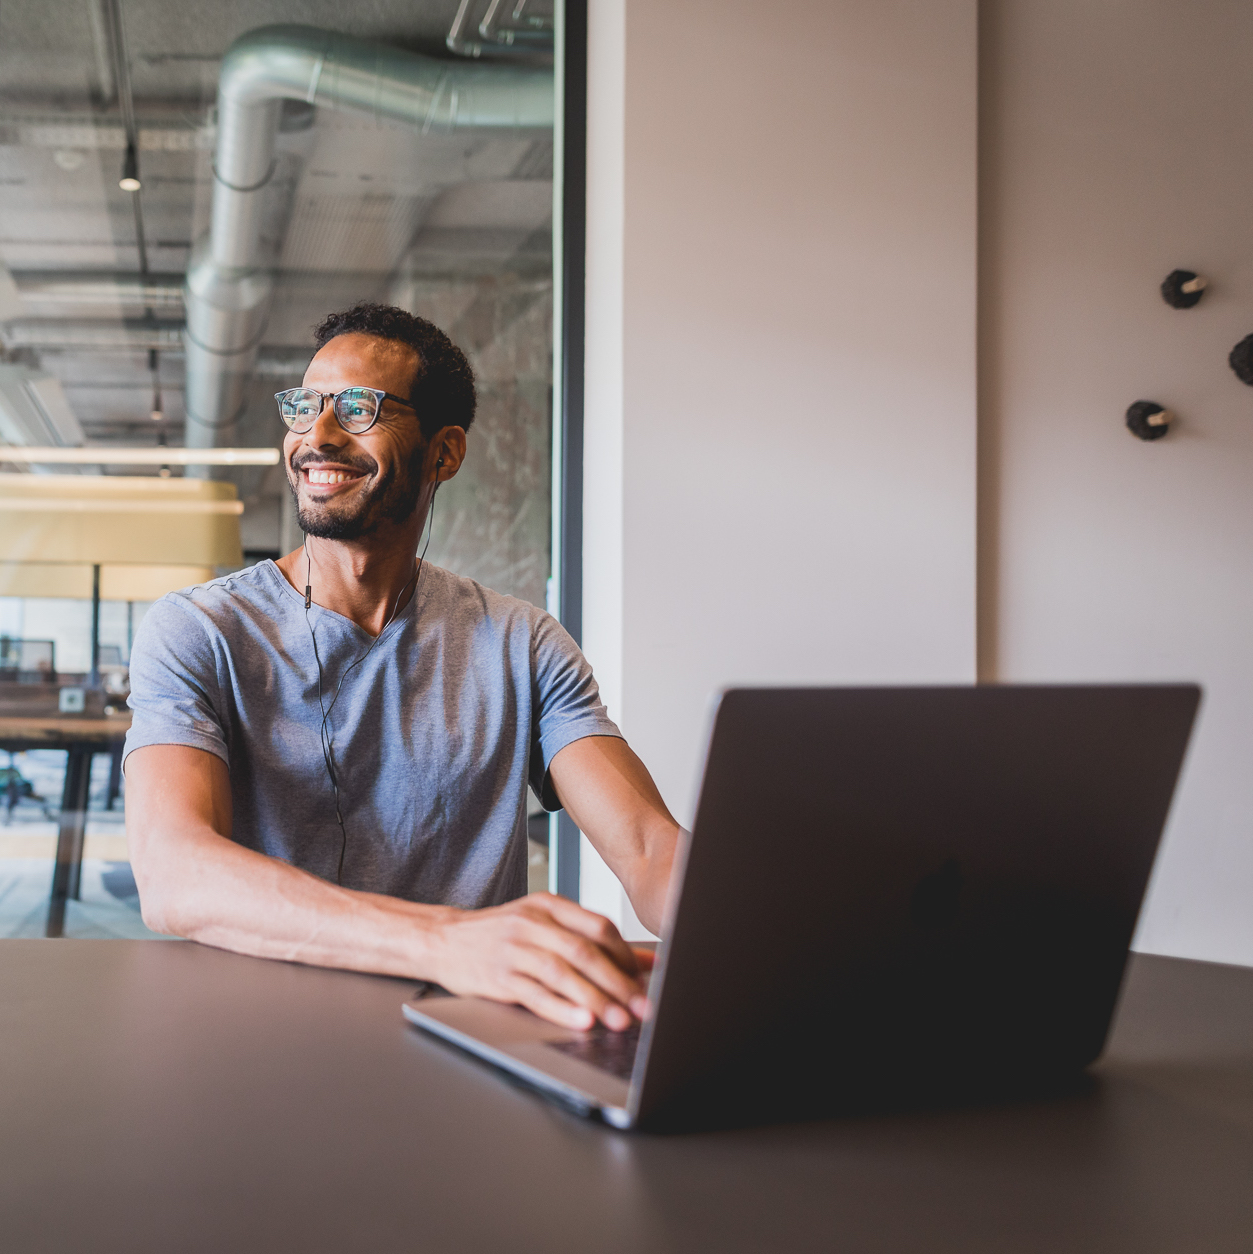 Smiling man staring off with laptop in front of him